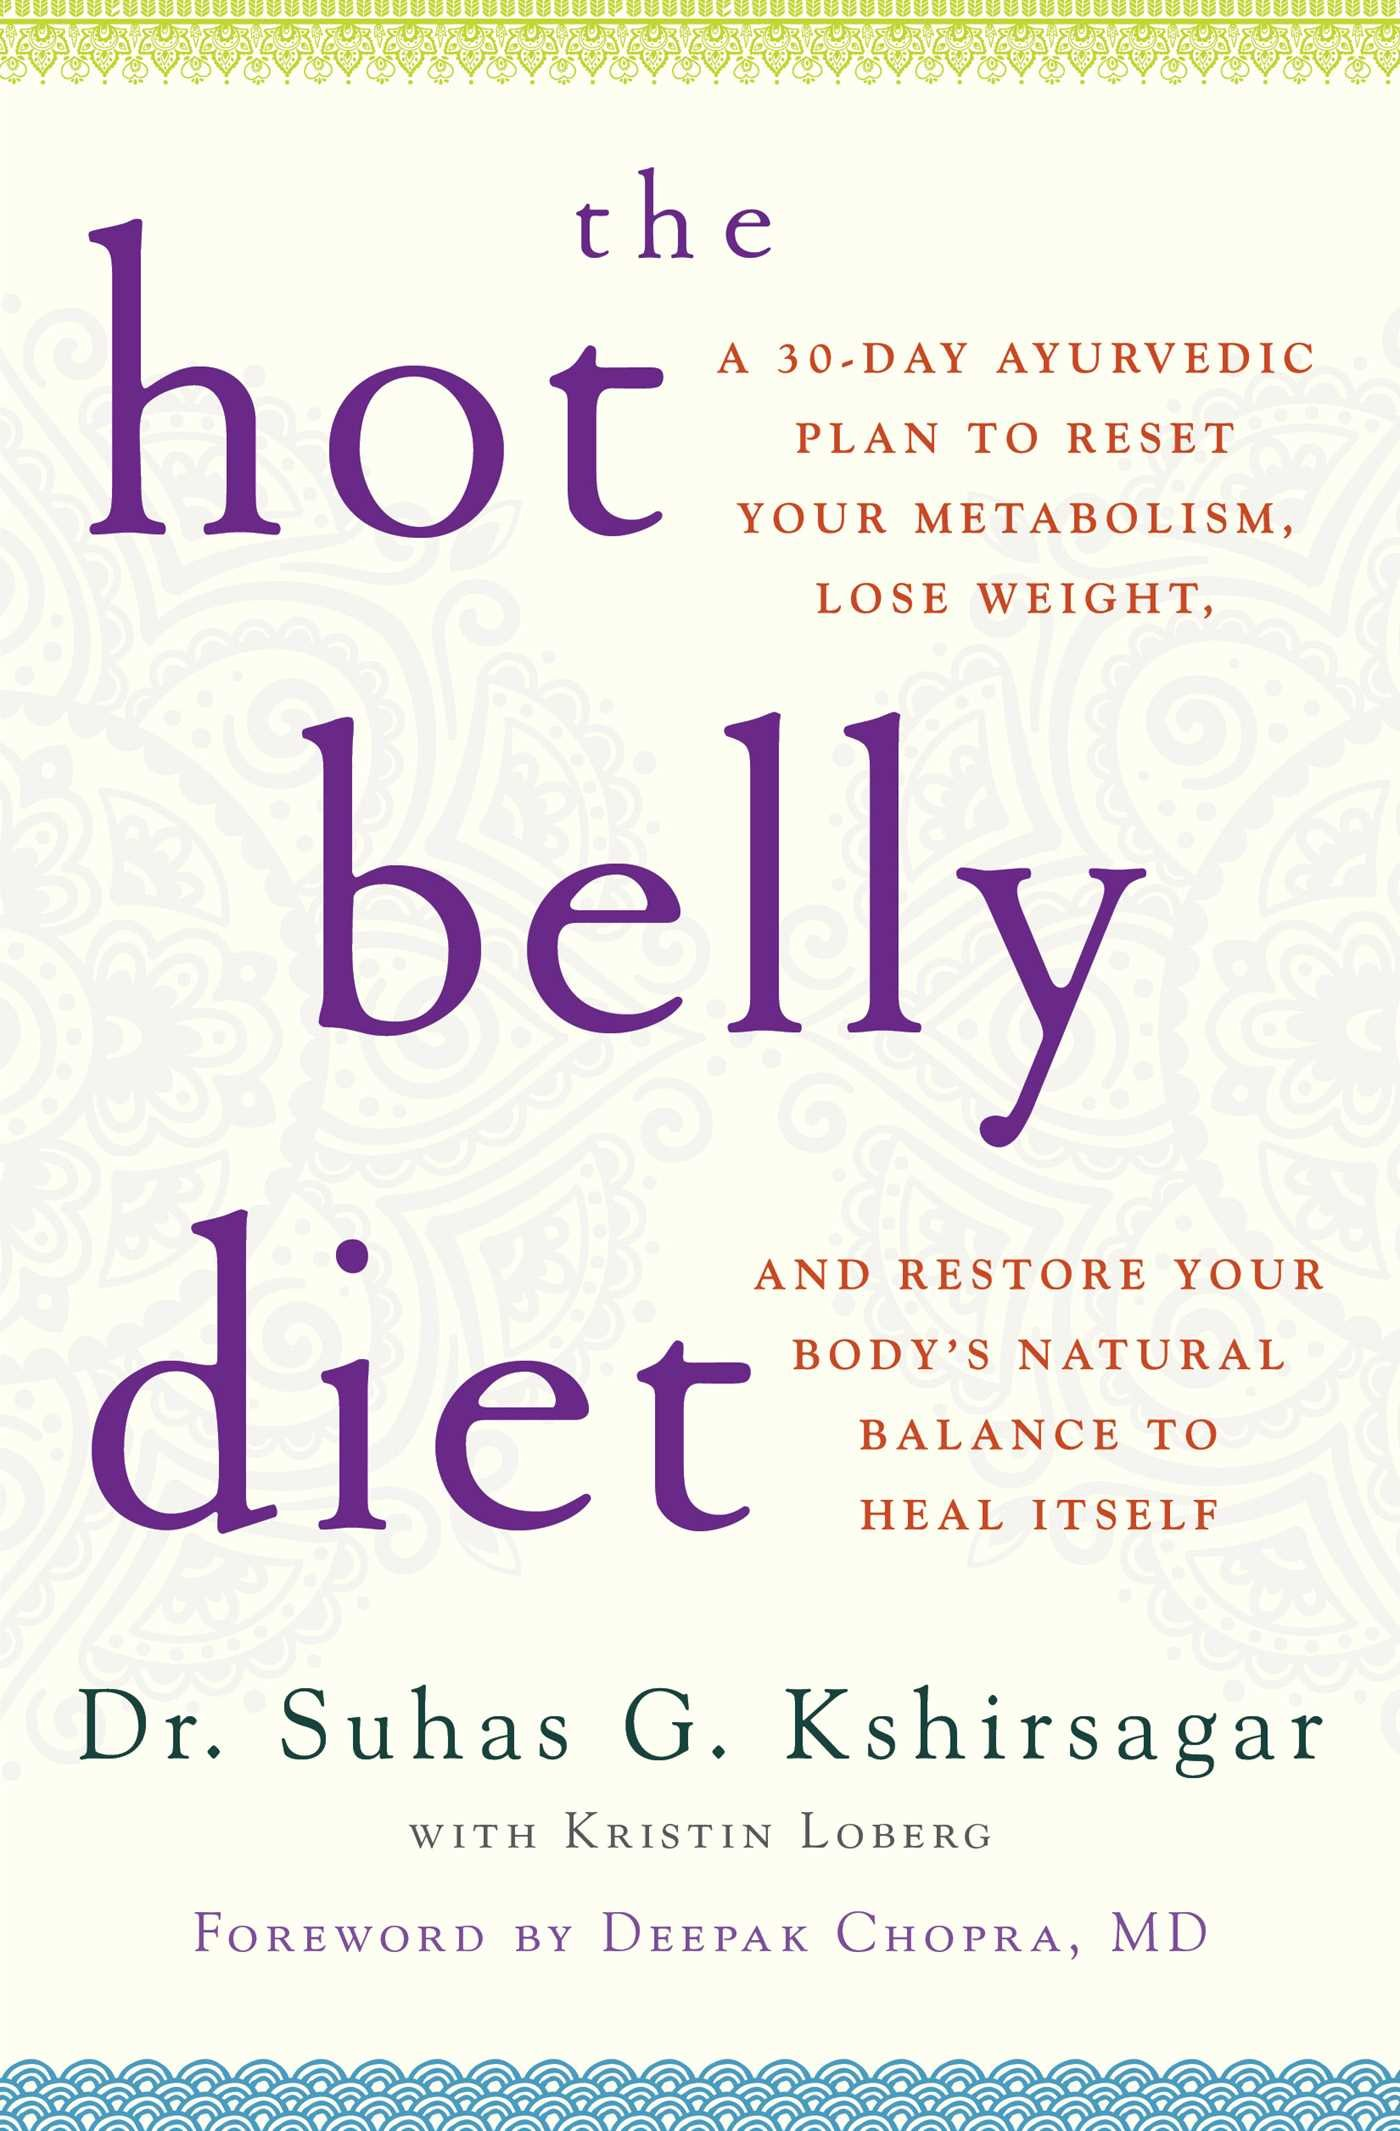 does the hot belly diet work?